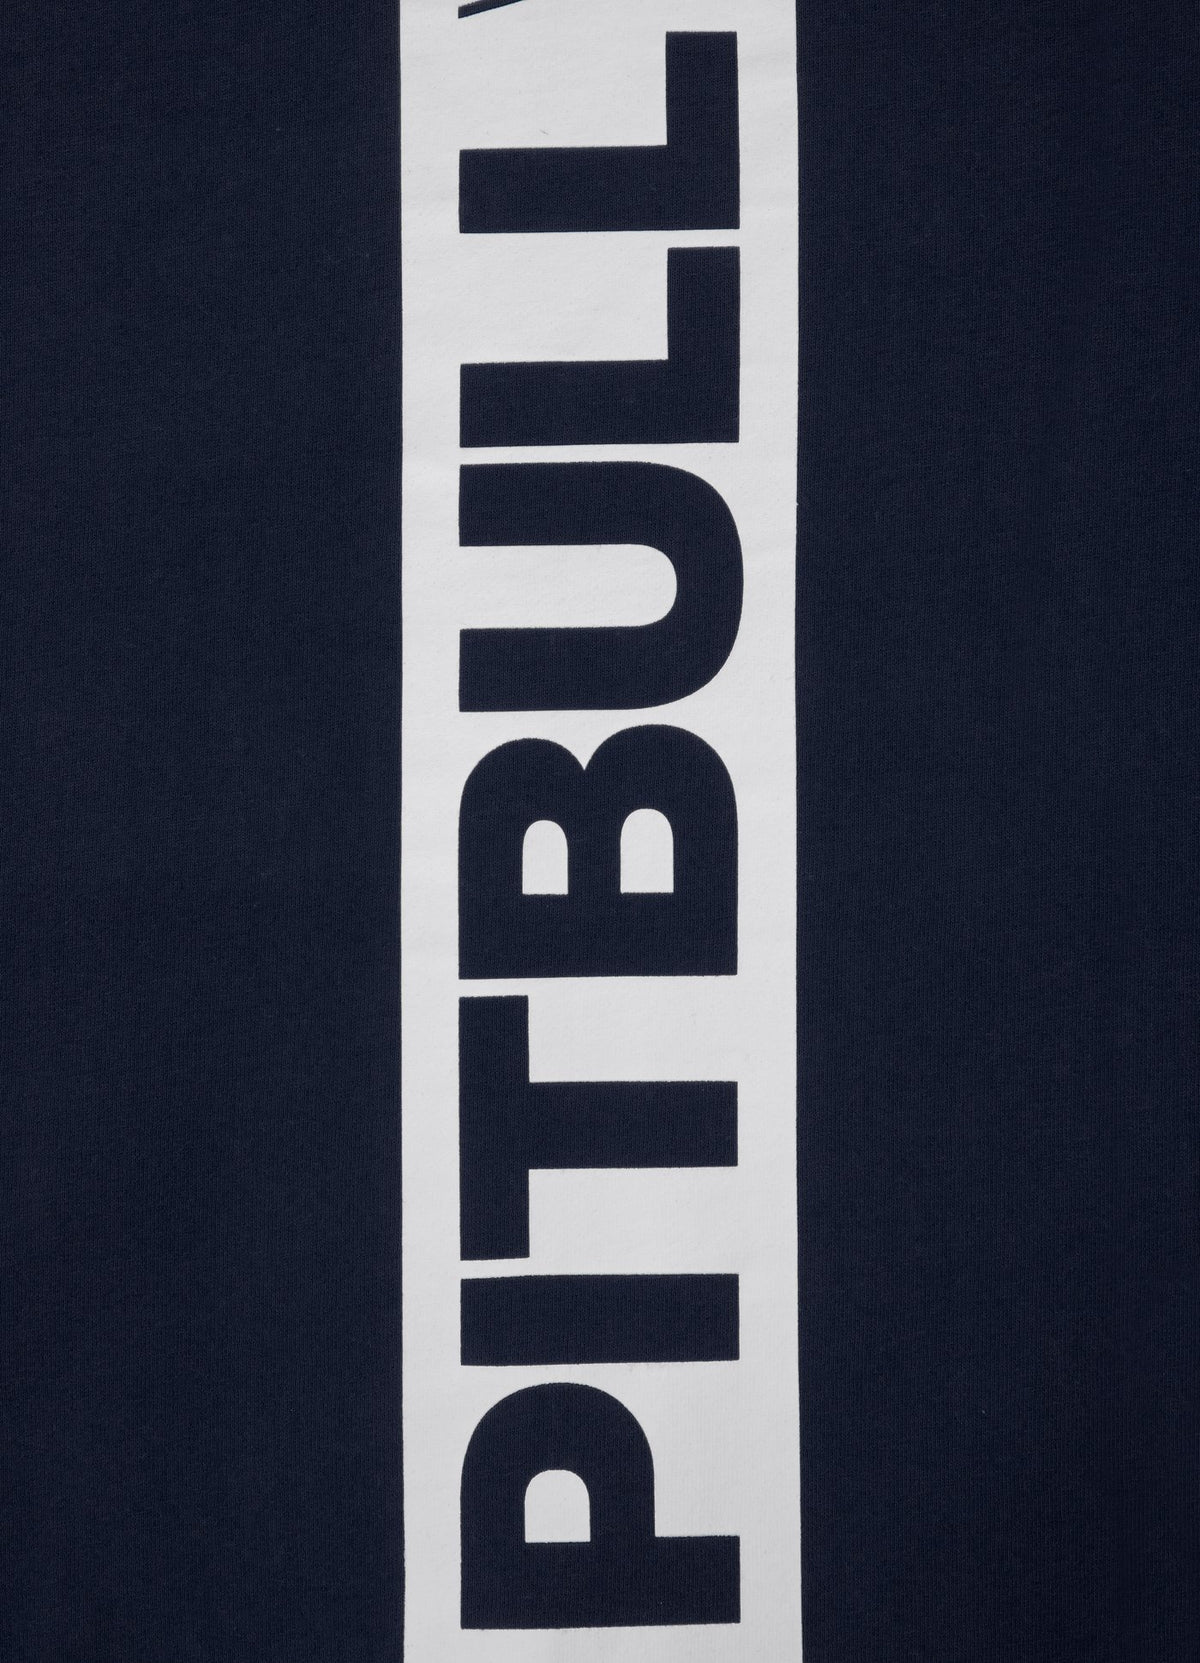 HILLTOP 2 HOODIE DARK NAVY - Pitbull West Coast U.S.A.